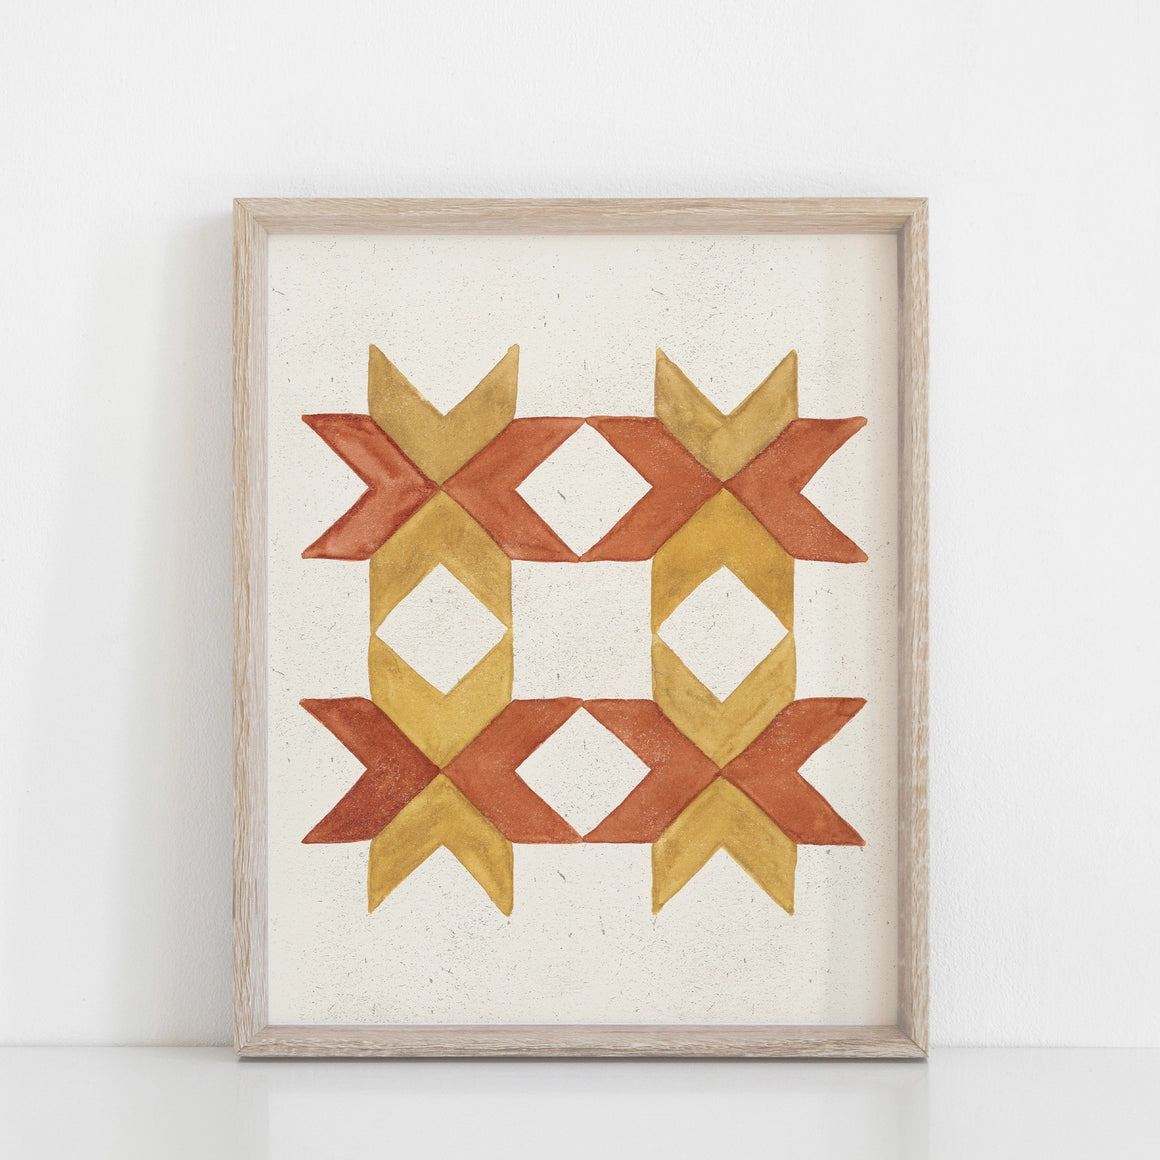 American farmhouse style is infused in this Watercolor Chevron Quilt Wall Art Print, Mustard and Rust. The simplicity and boldness of this quilt block brightens any room and adds a bit cheer. Professionally printed on high quality archival fine art paper with archival inks. Listing is for the art print only, frame not included. 8 x 10